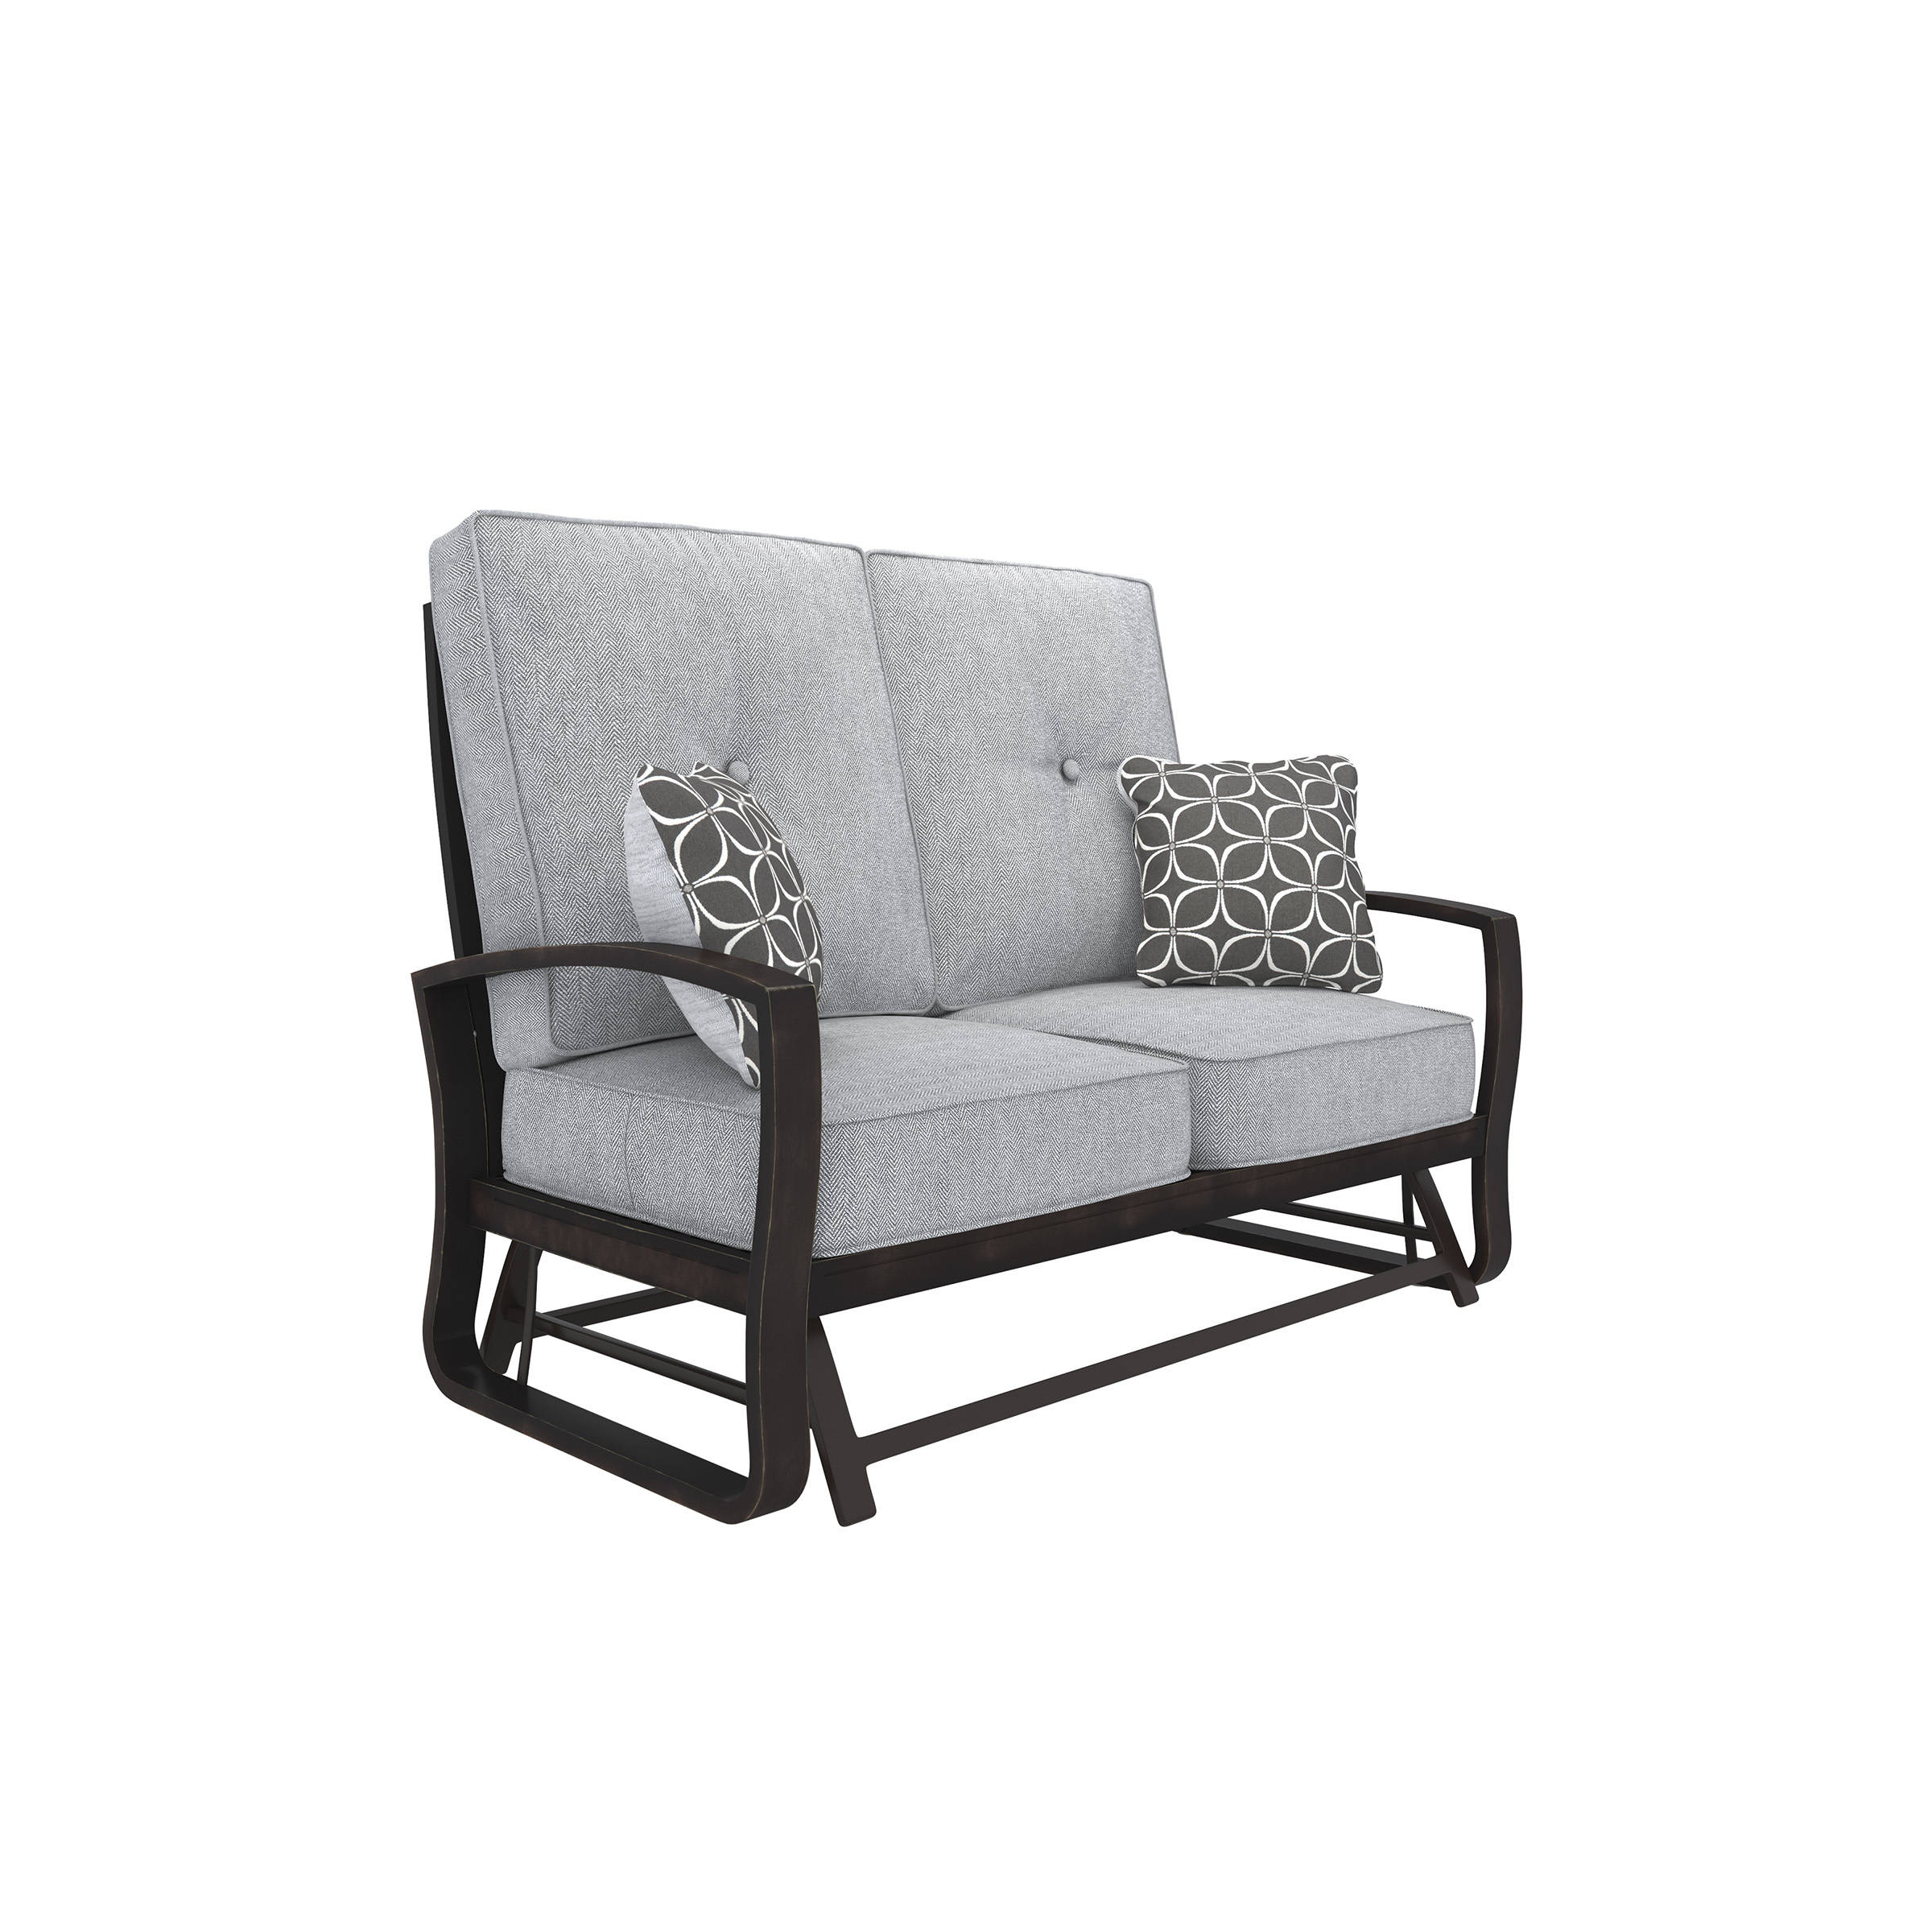 Ashley Furniture Castle Island Cushion Glider Loveseat Click To Enlarge